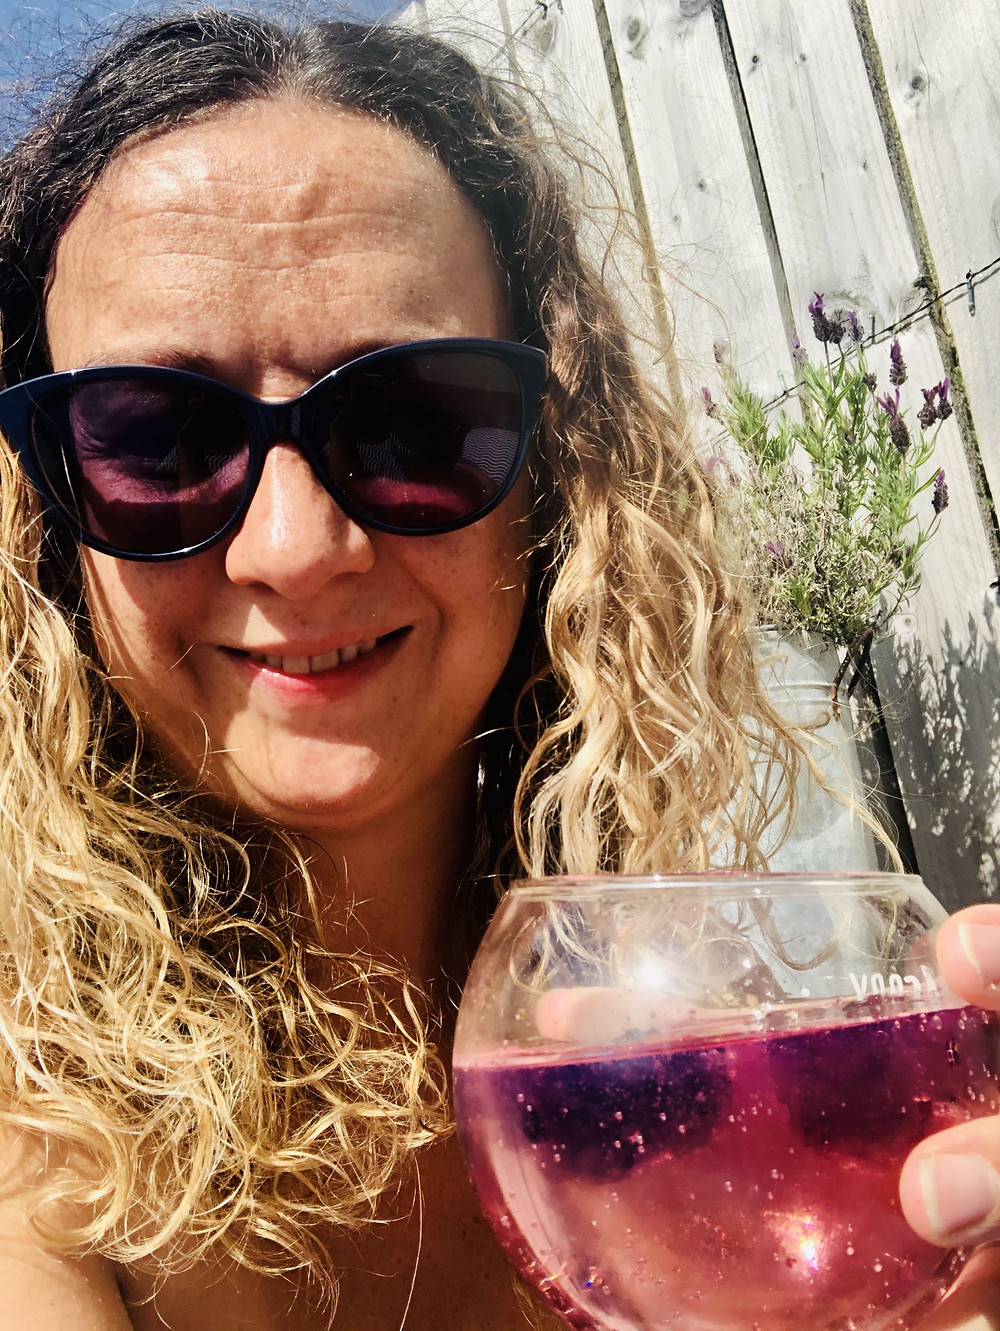 Disabled lockdown holiday at home - wheelchair user Carrie-Ann drinking a cocktail